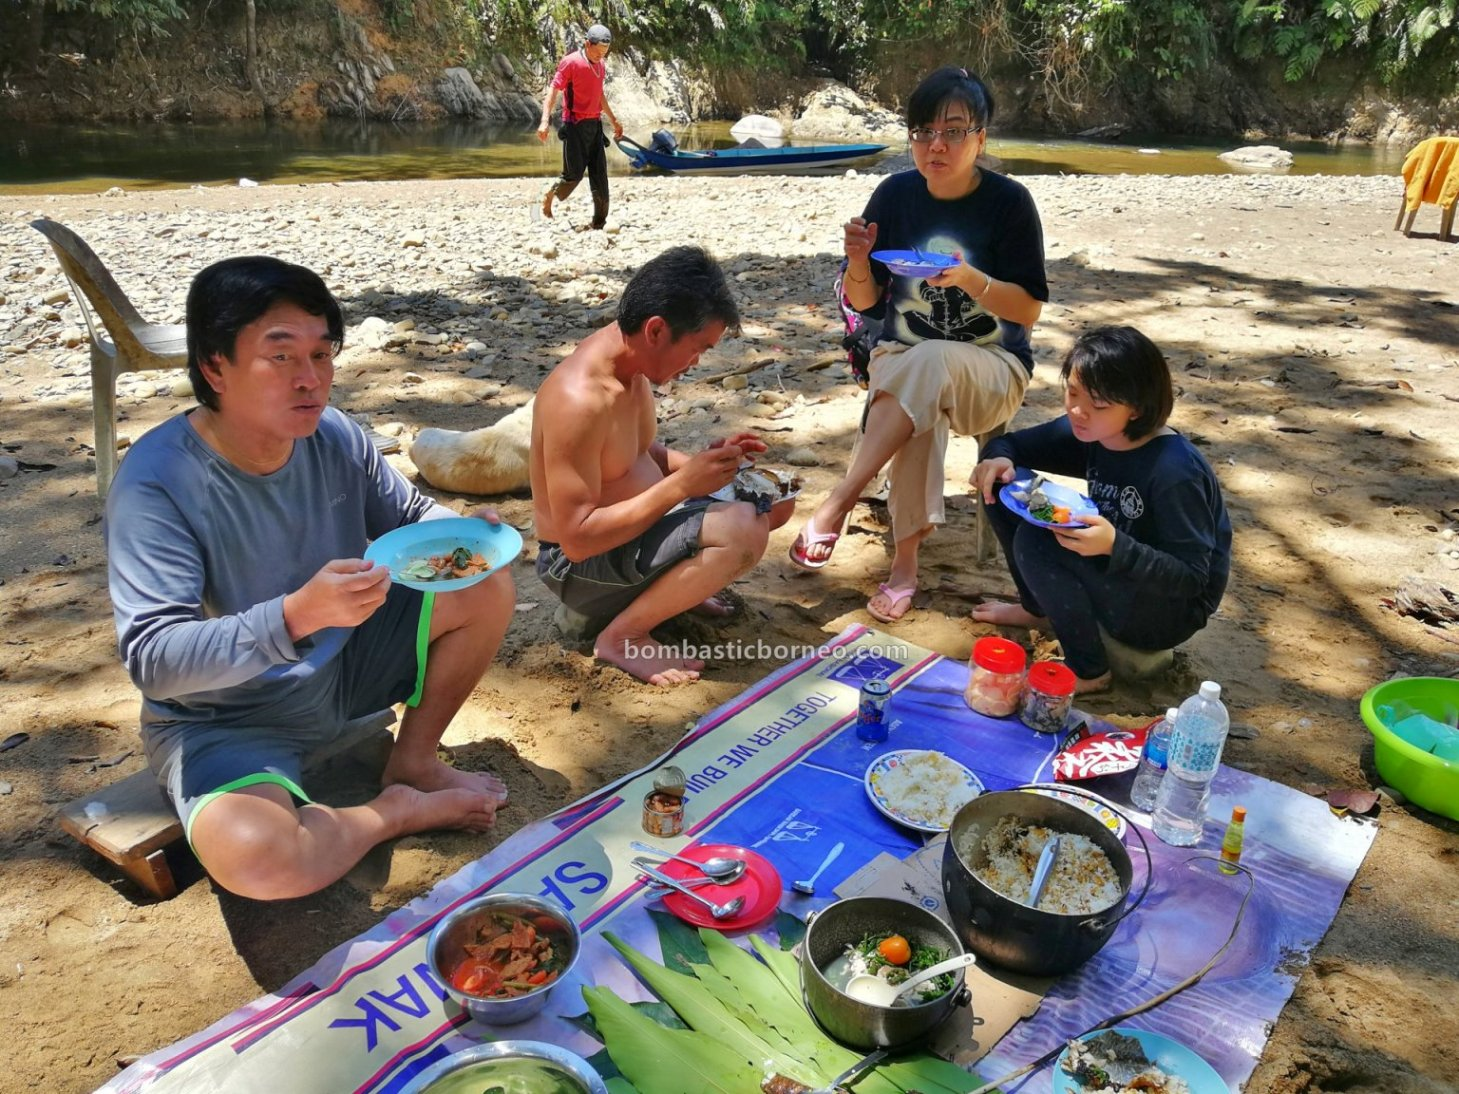 backpackers, destination, Sungai Balui, exotic fish, Ikan semah, traditional, fishing trip, memancing, Kapit, native, tourist attraction, travel guide, Trans Borneo, 婆罗洲钓鱼之旅, 砂拉越巴贡水电站, 布拉甲马来西亚,